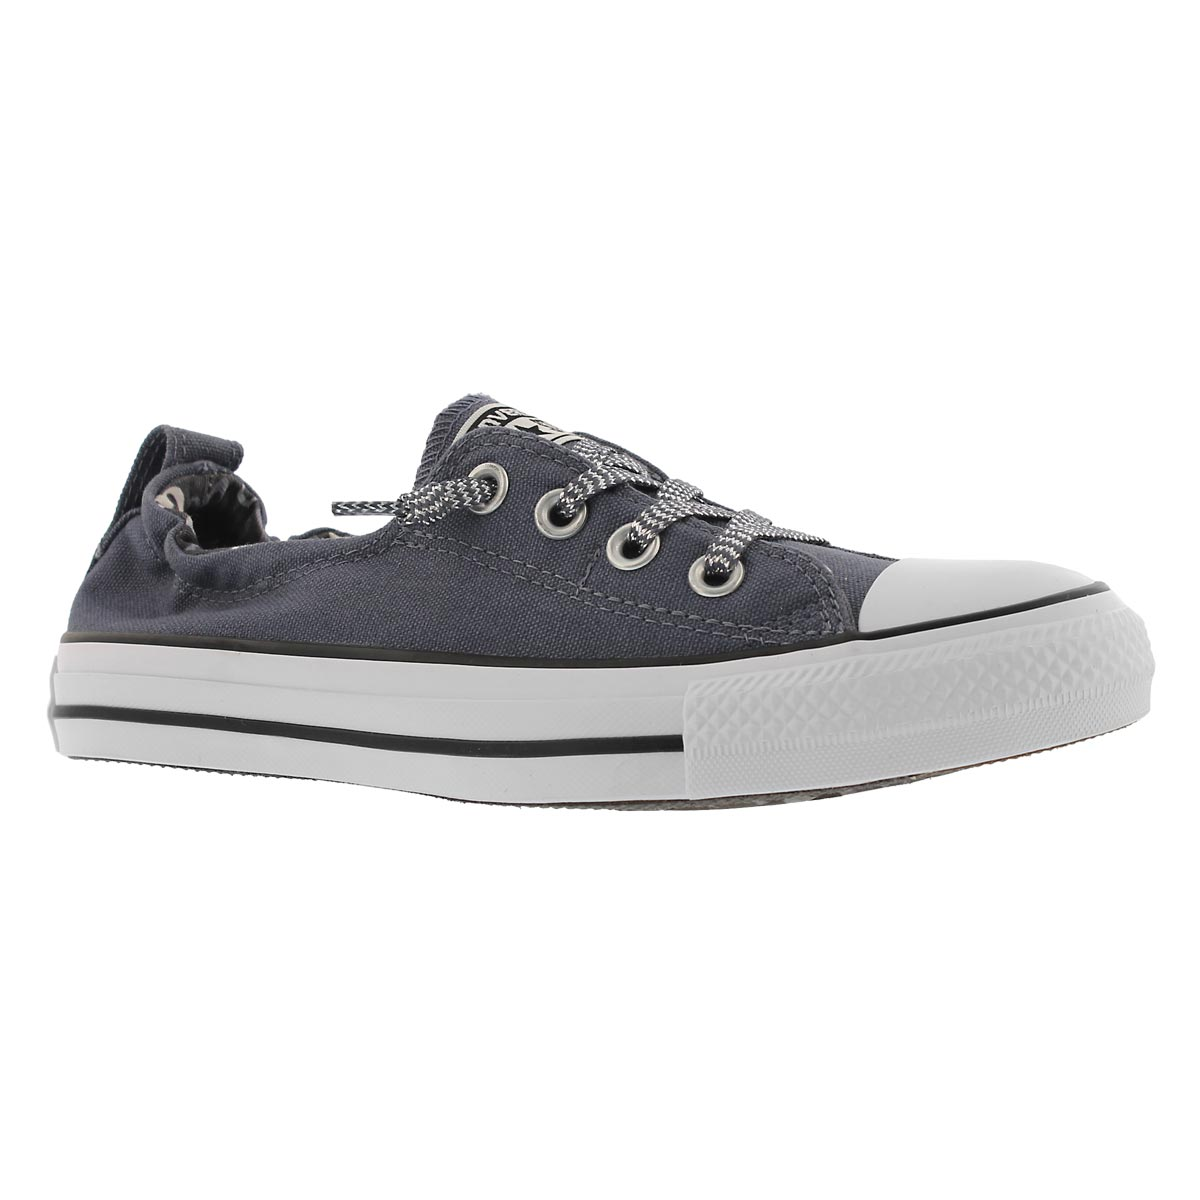 Women's CT ALL STAR SHORELINE lt carbon sneakers